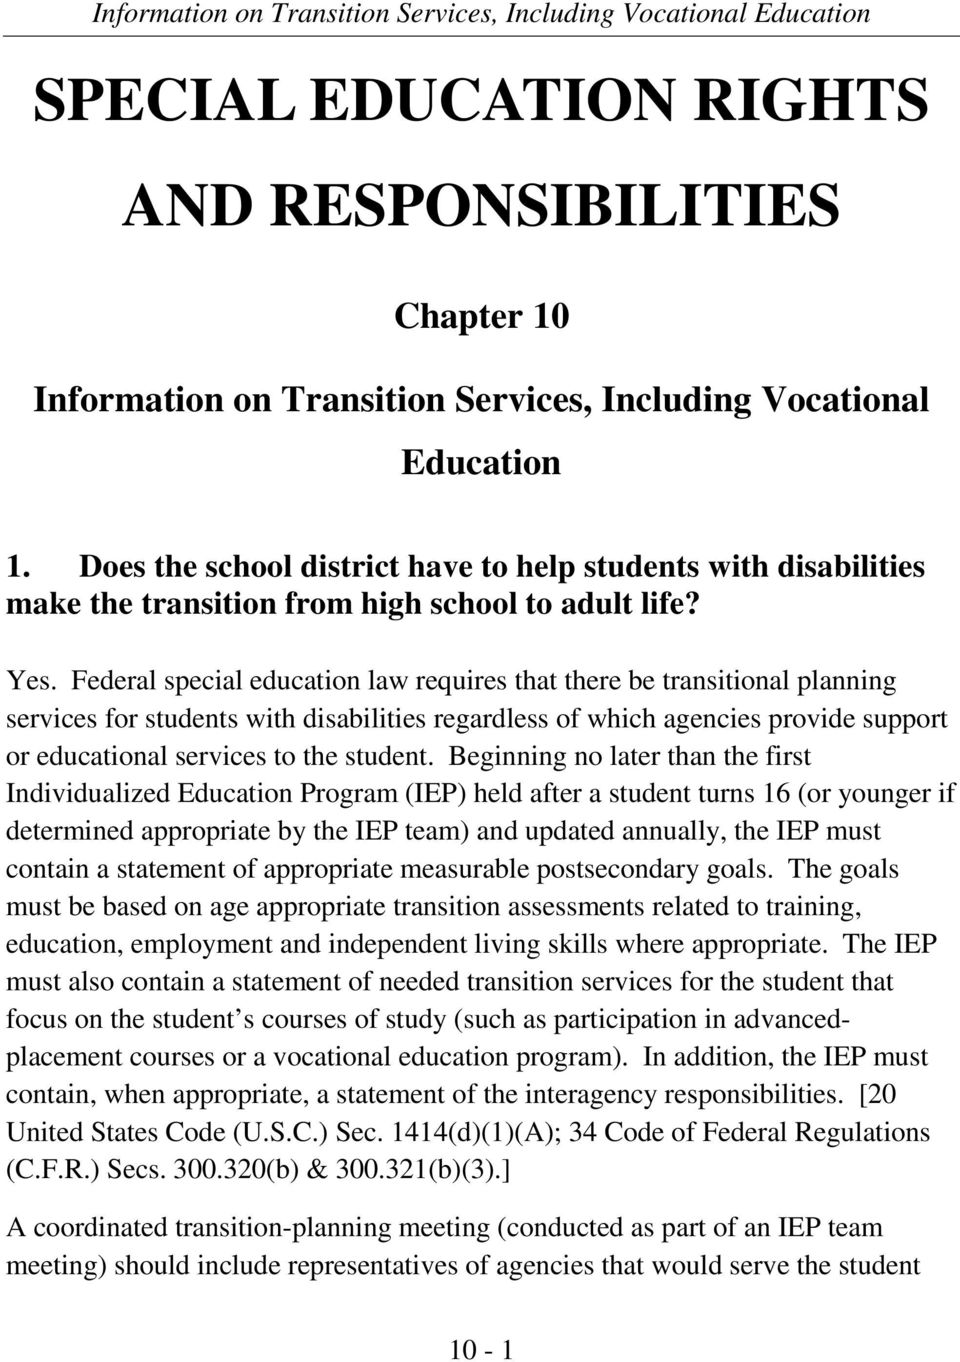 Federal special education law requires that there be transitional planning services for students with disabilities regardless of which agencies provide support or educational services to the student.